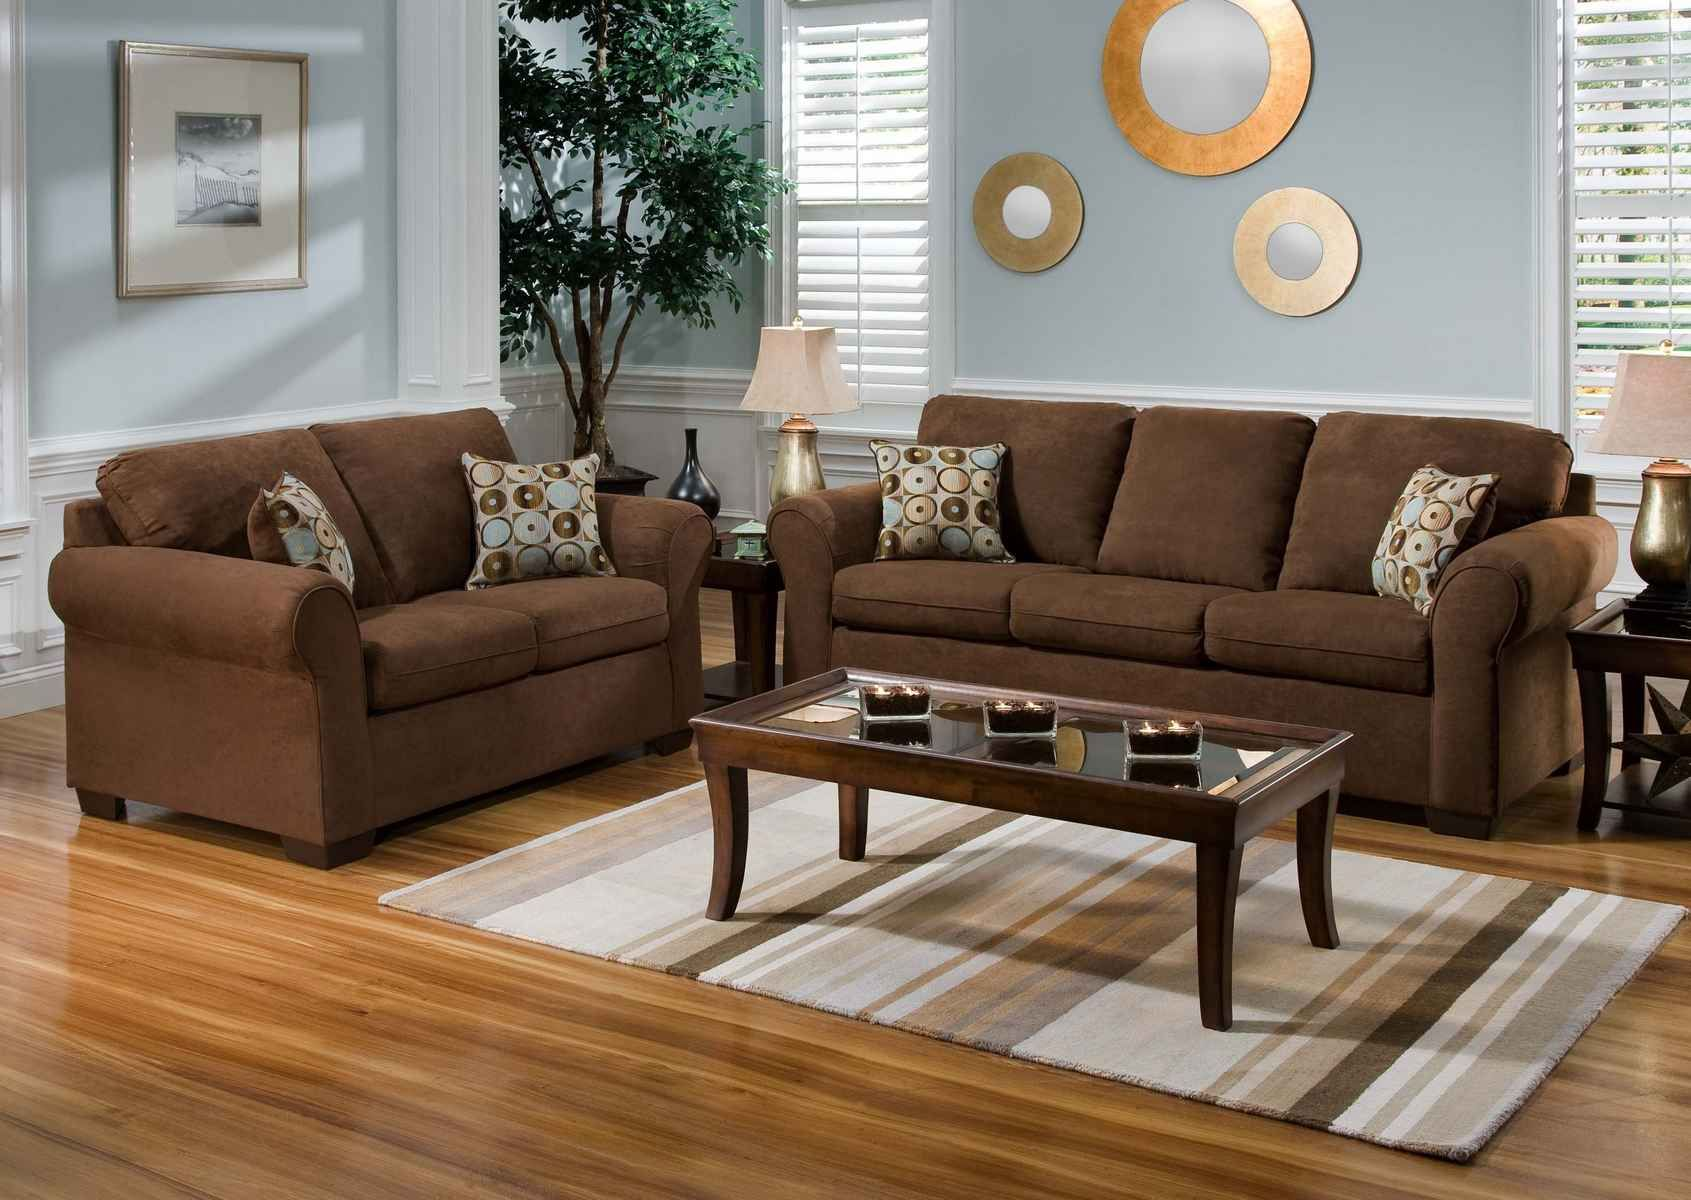 Blue Living Room Color Schemes Home Design Ideas Newest For Light Brown Couches Modern O Brown Living Room Decor Brown Couch Living Room Brown Sofa Living Room